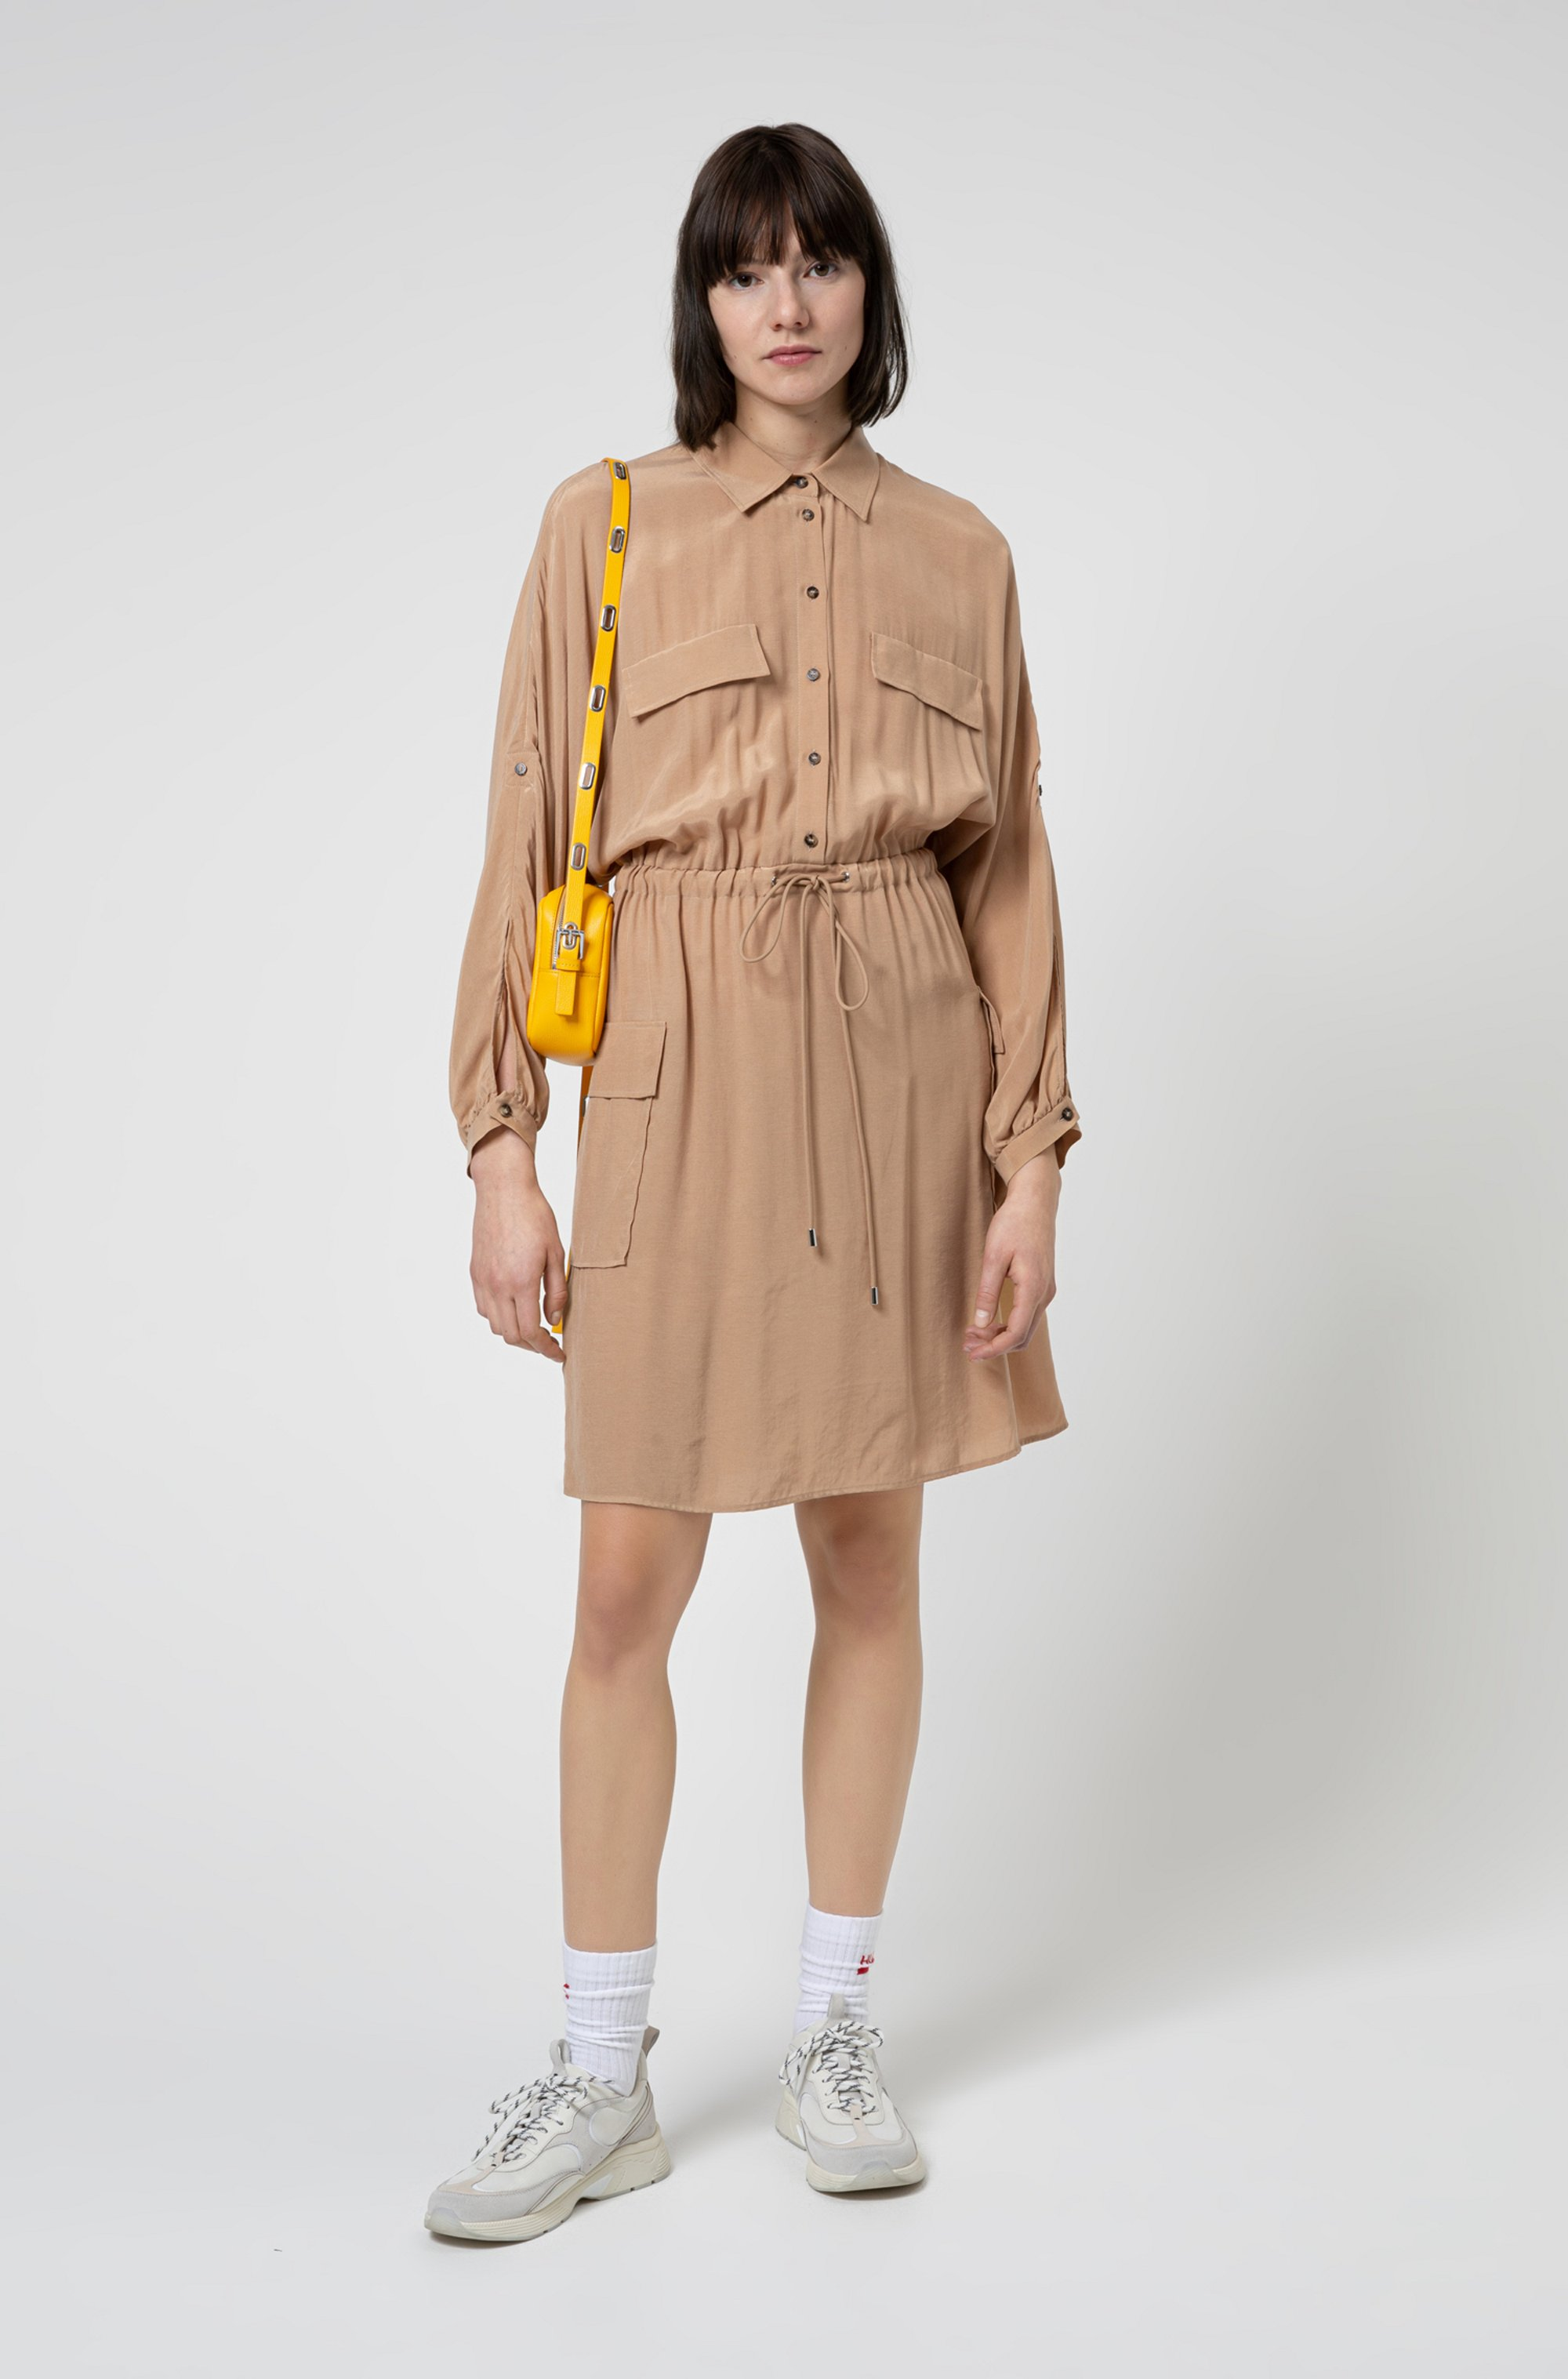 Long-sleeved utility dress with drawstring waist